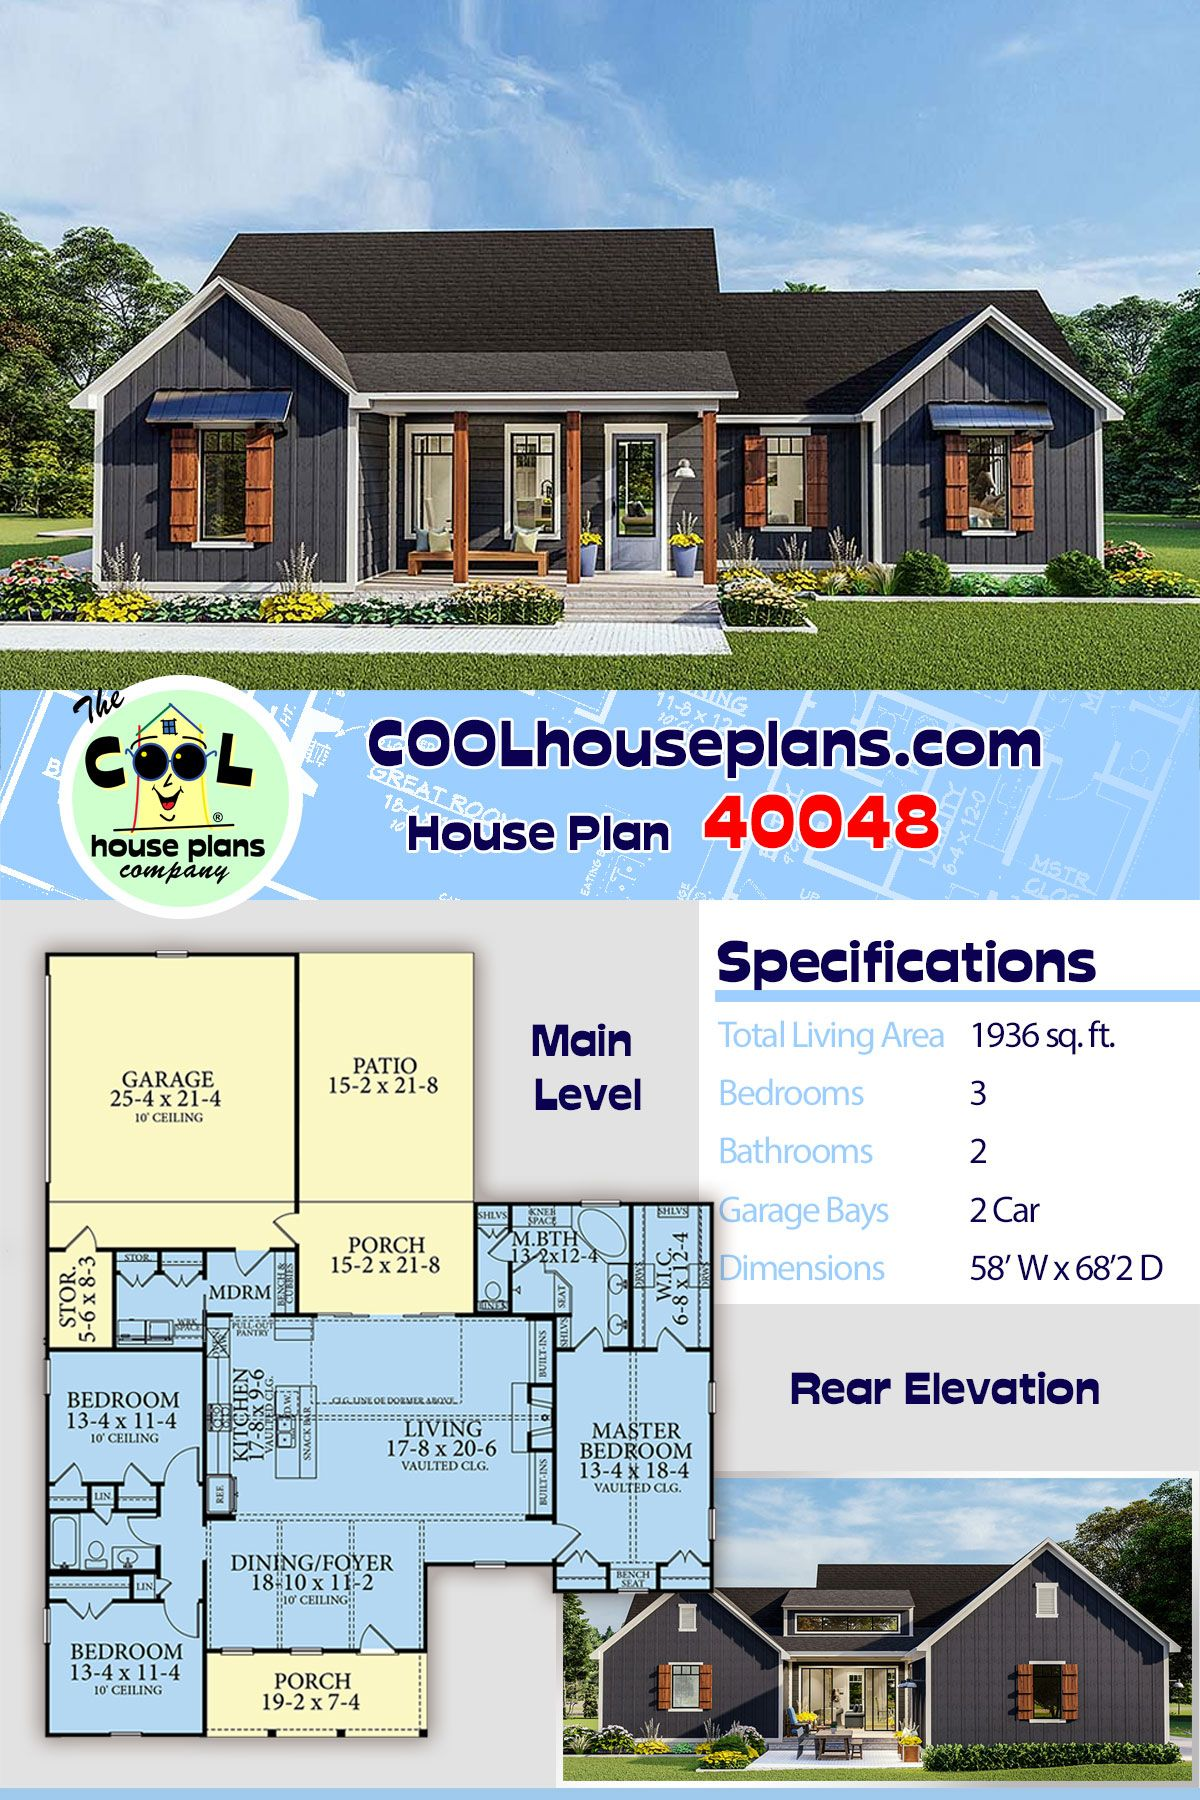 Traditional Style House Plan 40048 With 3 Bed 2 Bath 2 Car Garage House Plans Ranch House Plans New House Plans